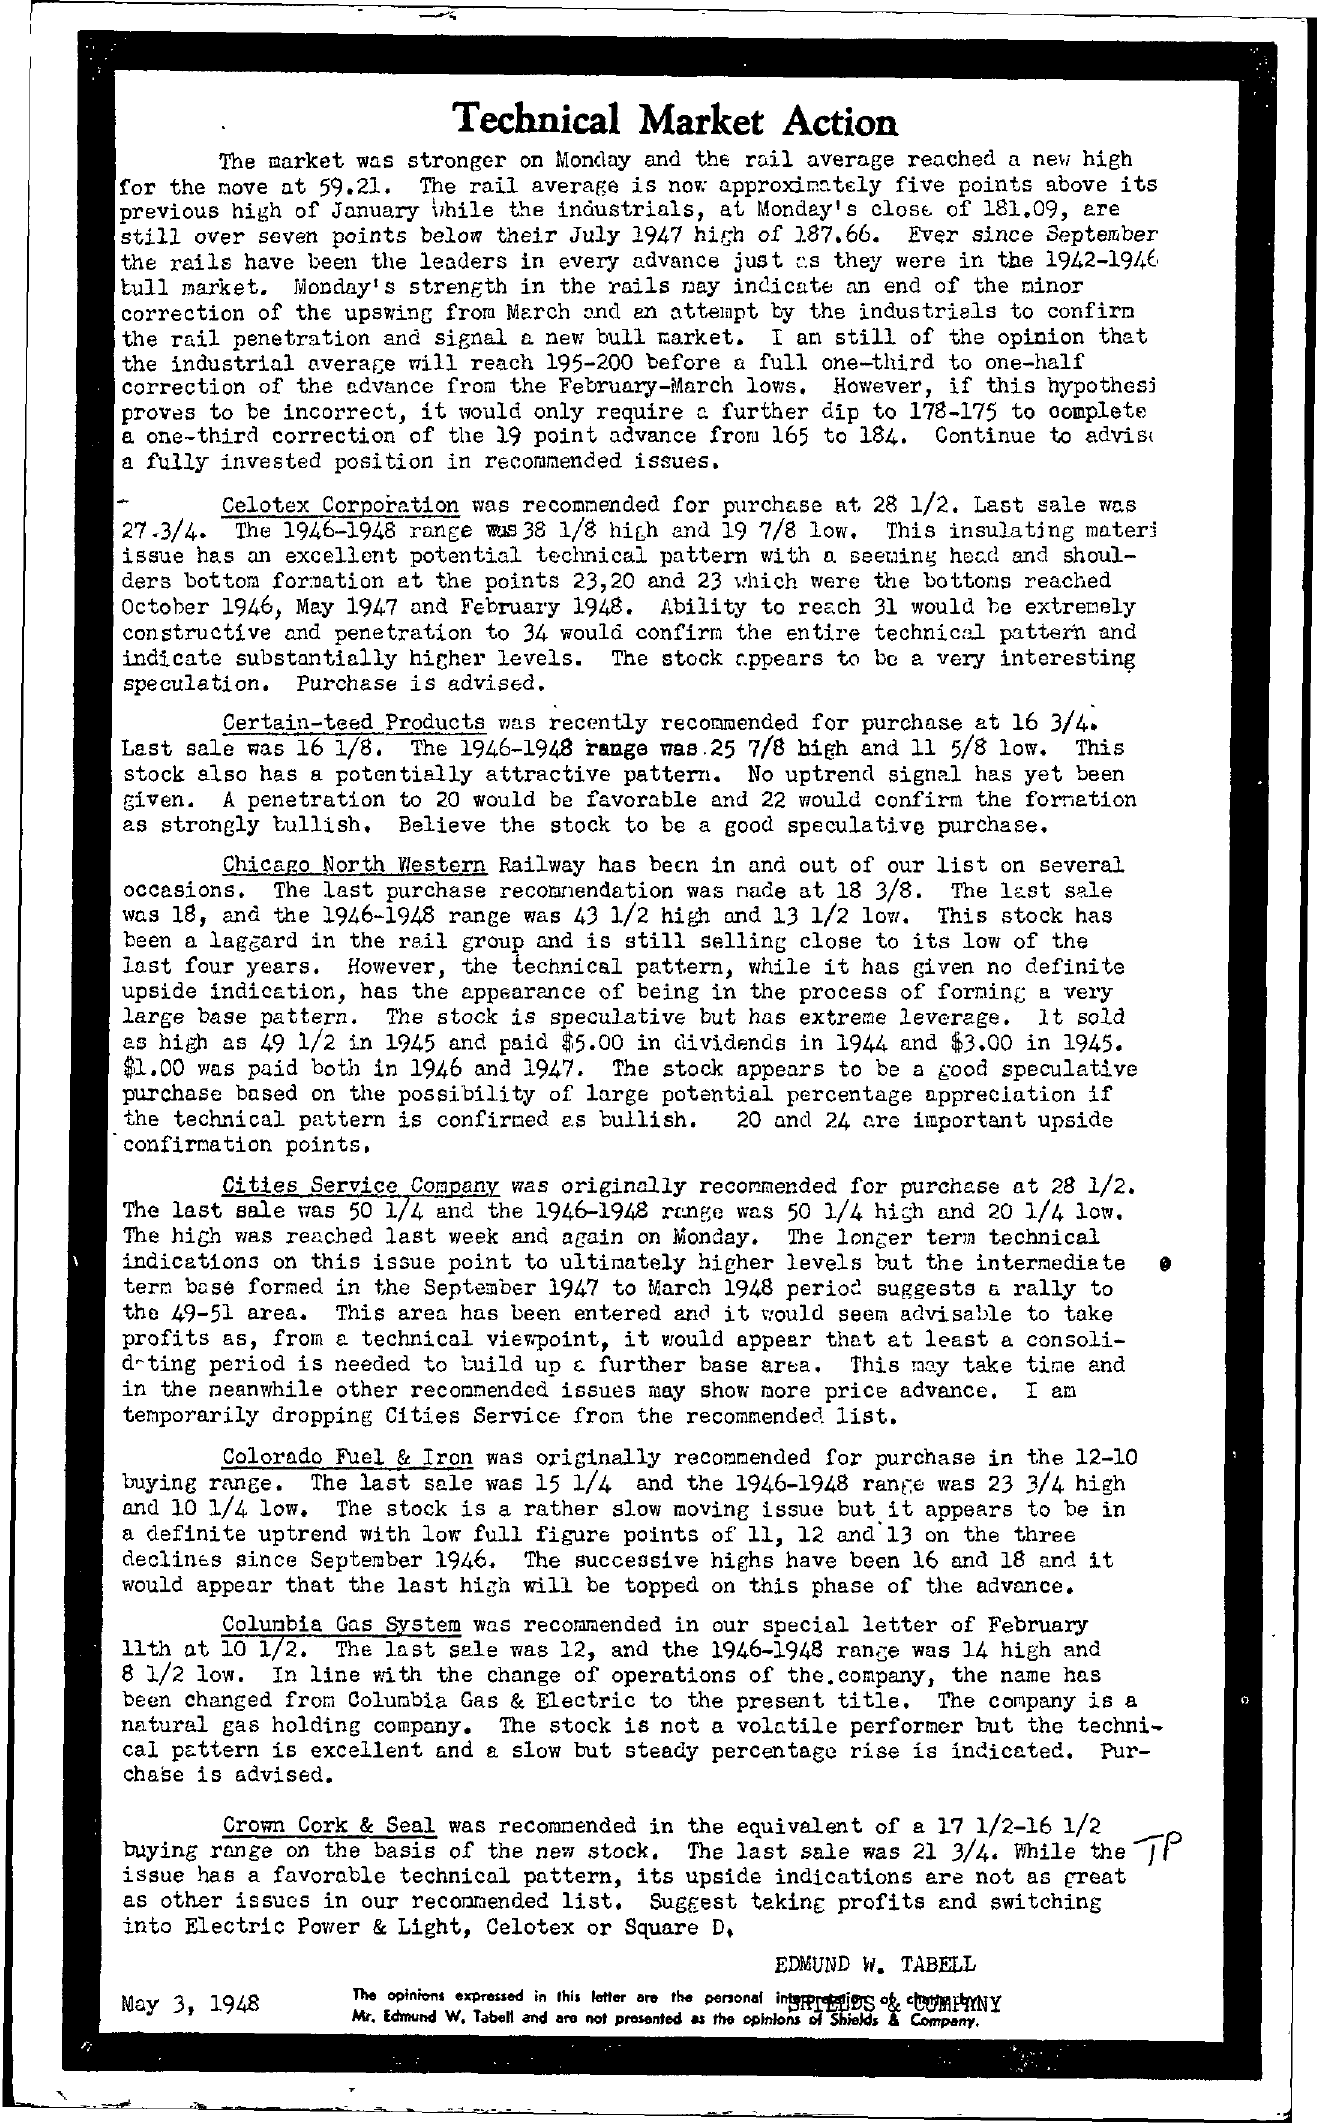 Tabell's Market Letter - May 03, 1948